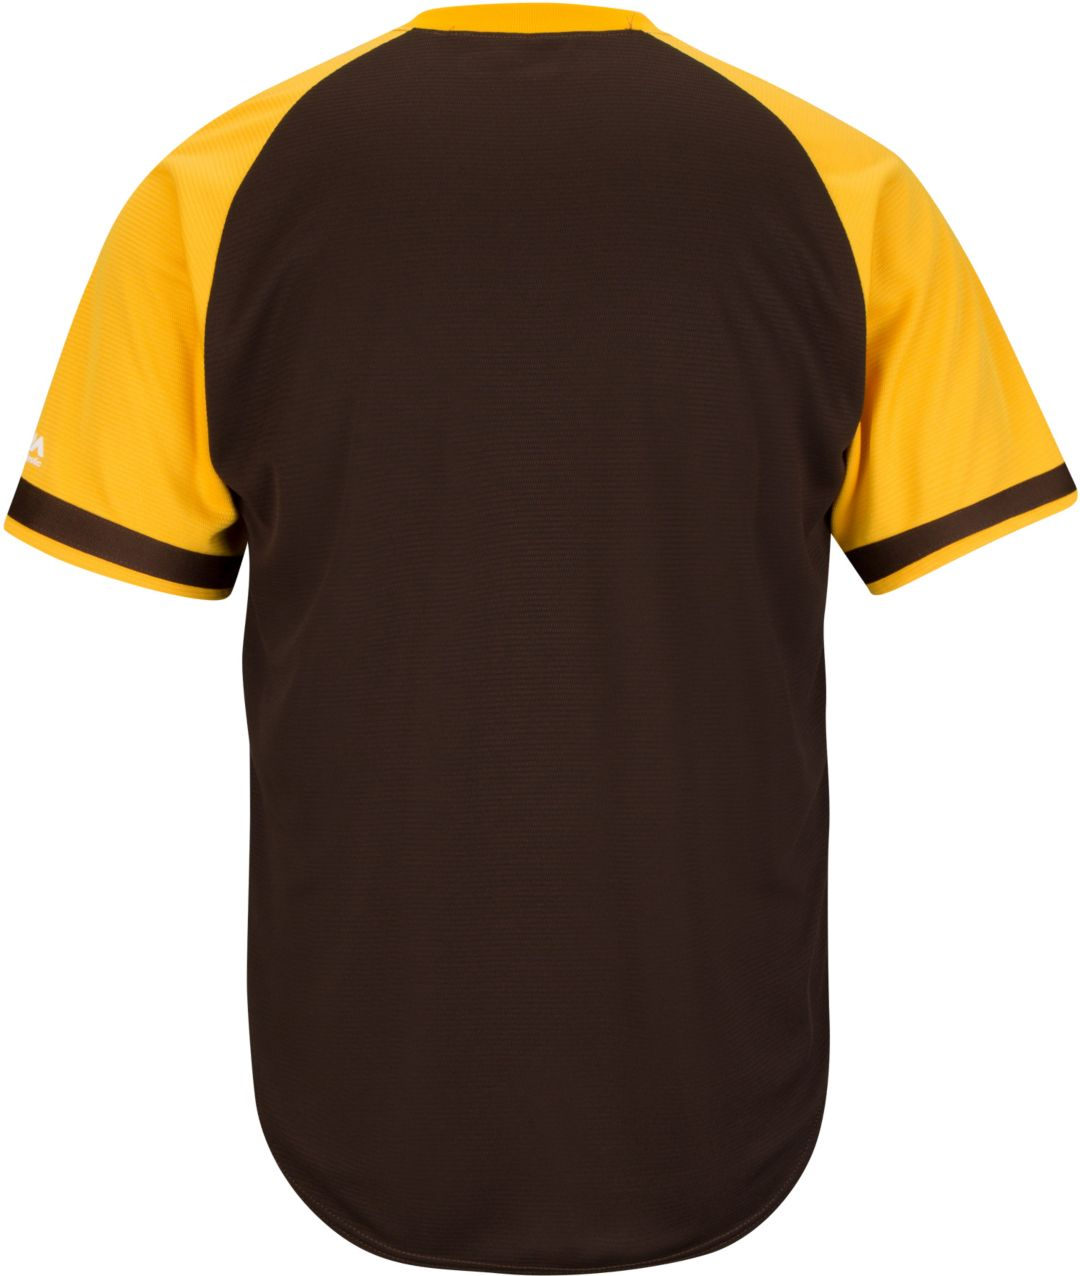 wholesale dealer 79fdb ae144 Majestic Men's Replica San Diego Padres Cool Base Brown Cooperstown Jersey